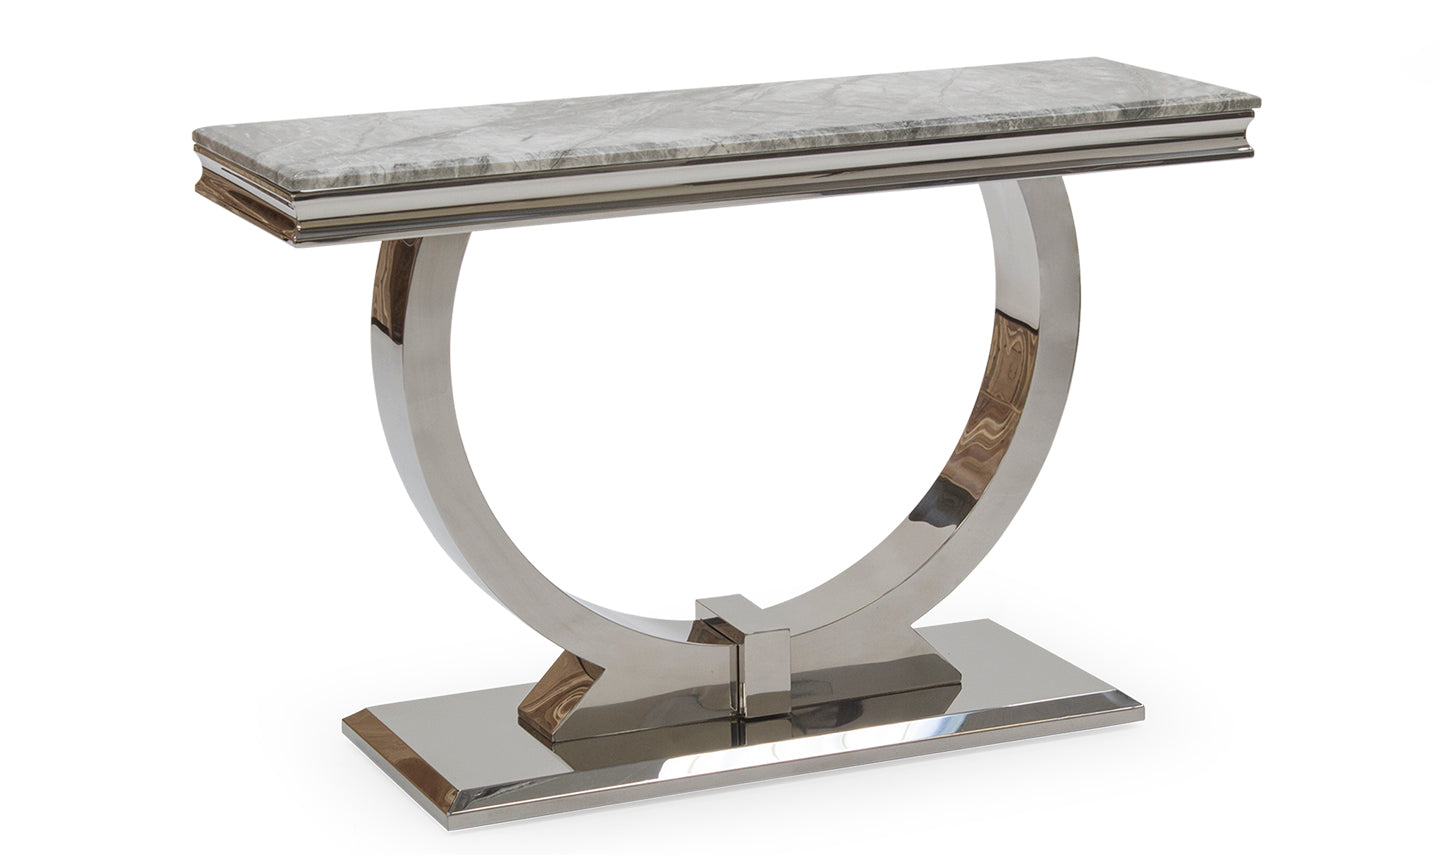 Arizona Console Table - Mirrored furniture - Sparkle Diamond - House of Sparkles